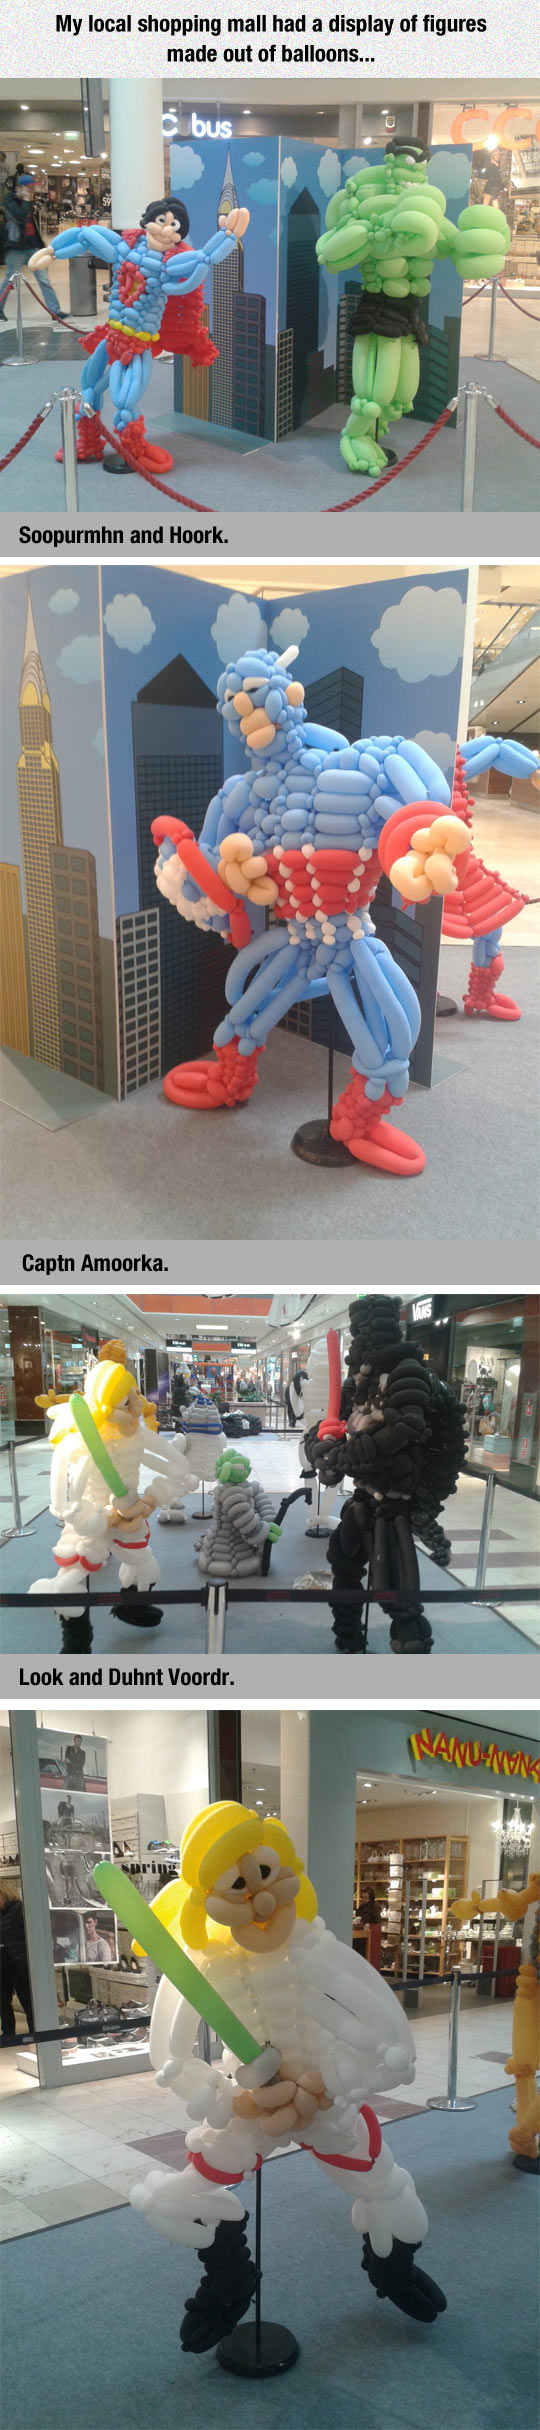 funny-figures-made-balloons-superman